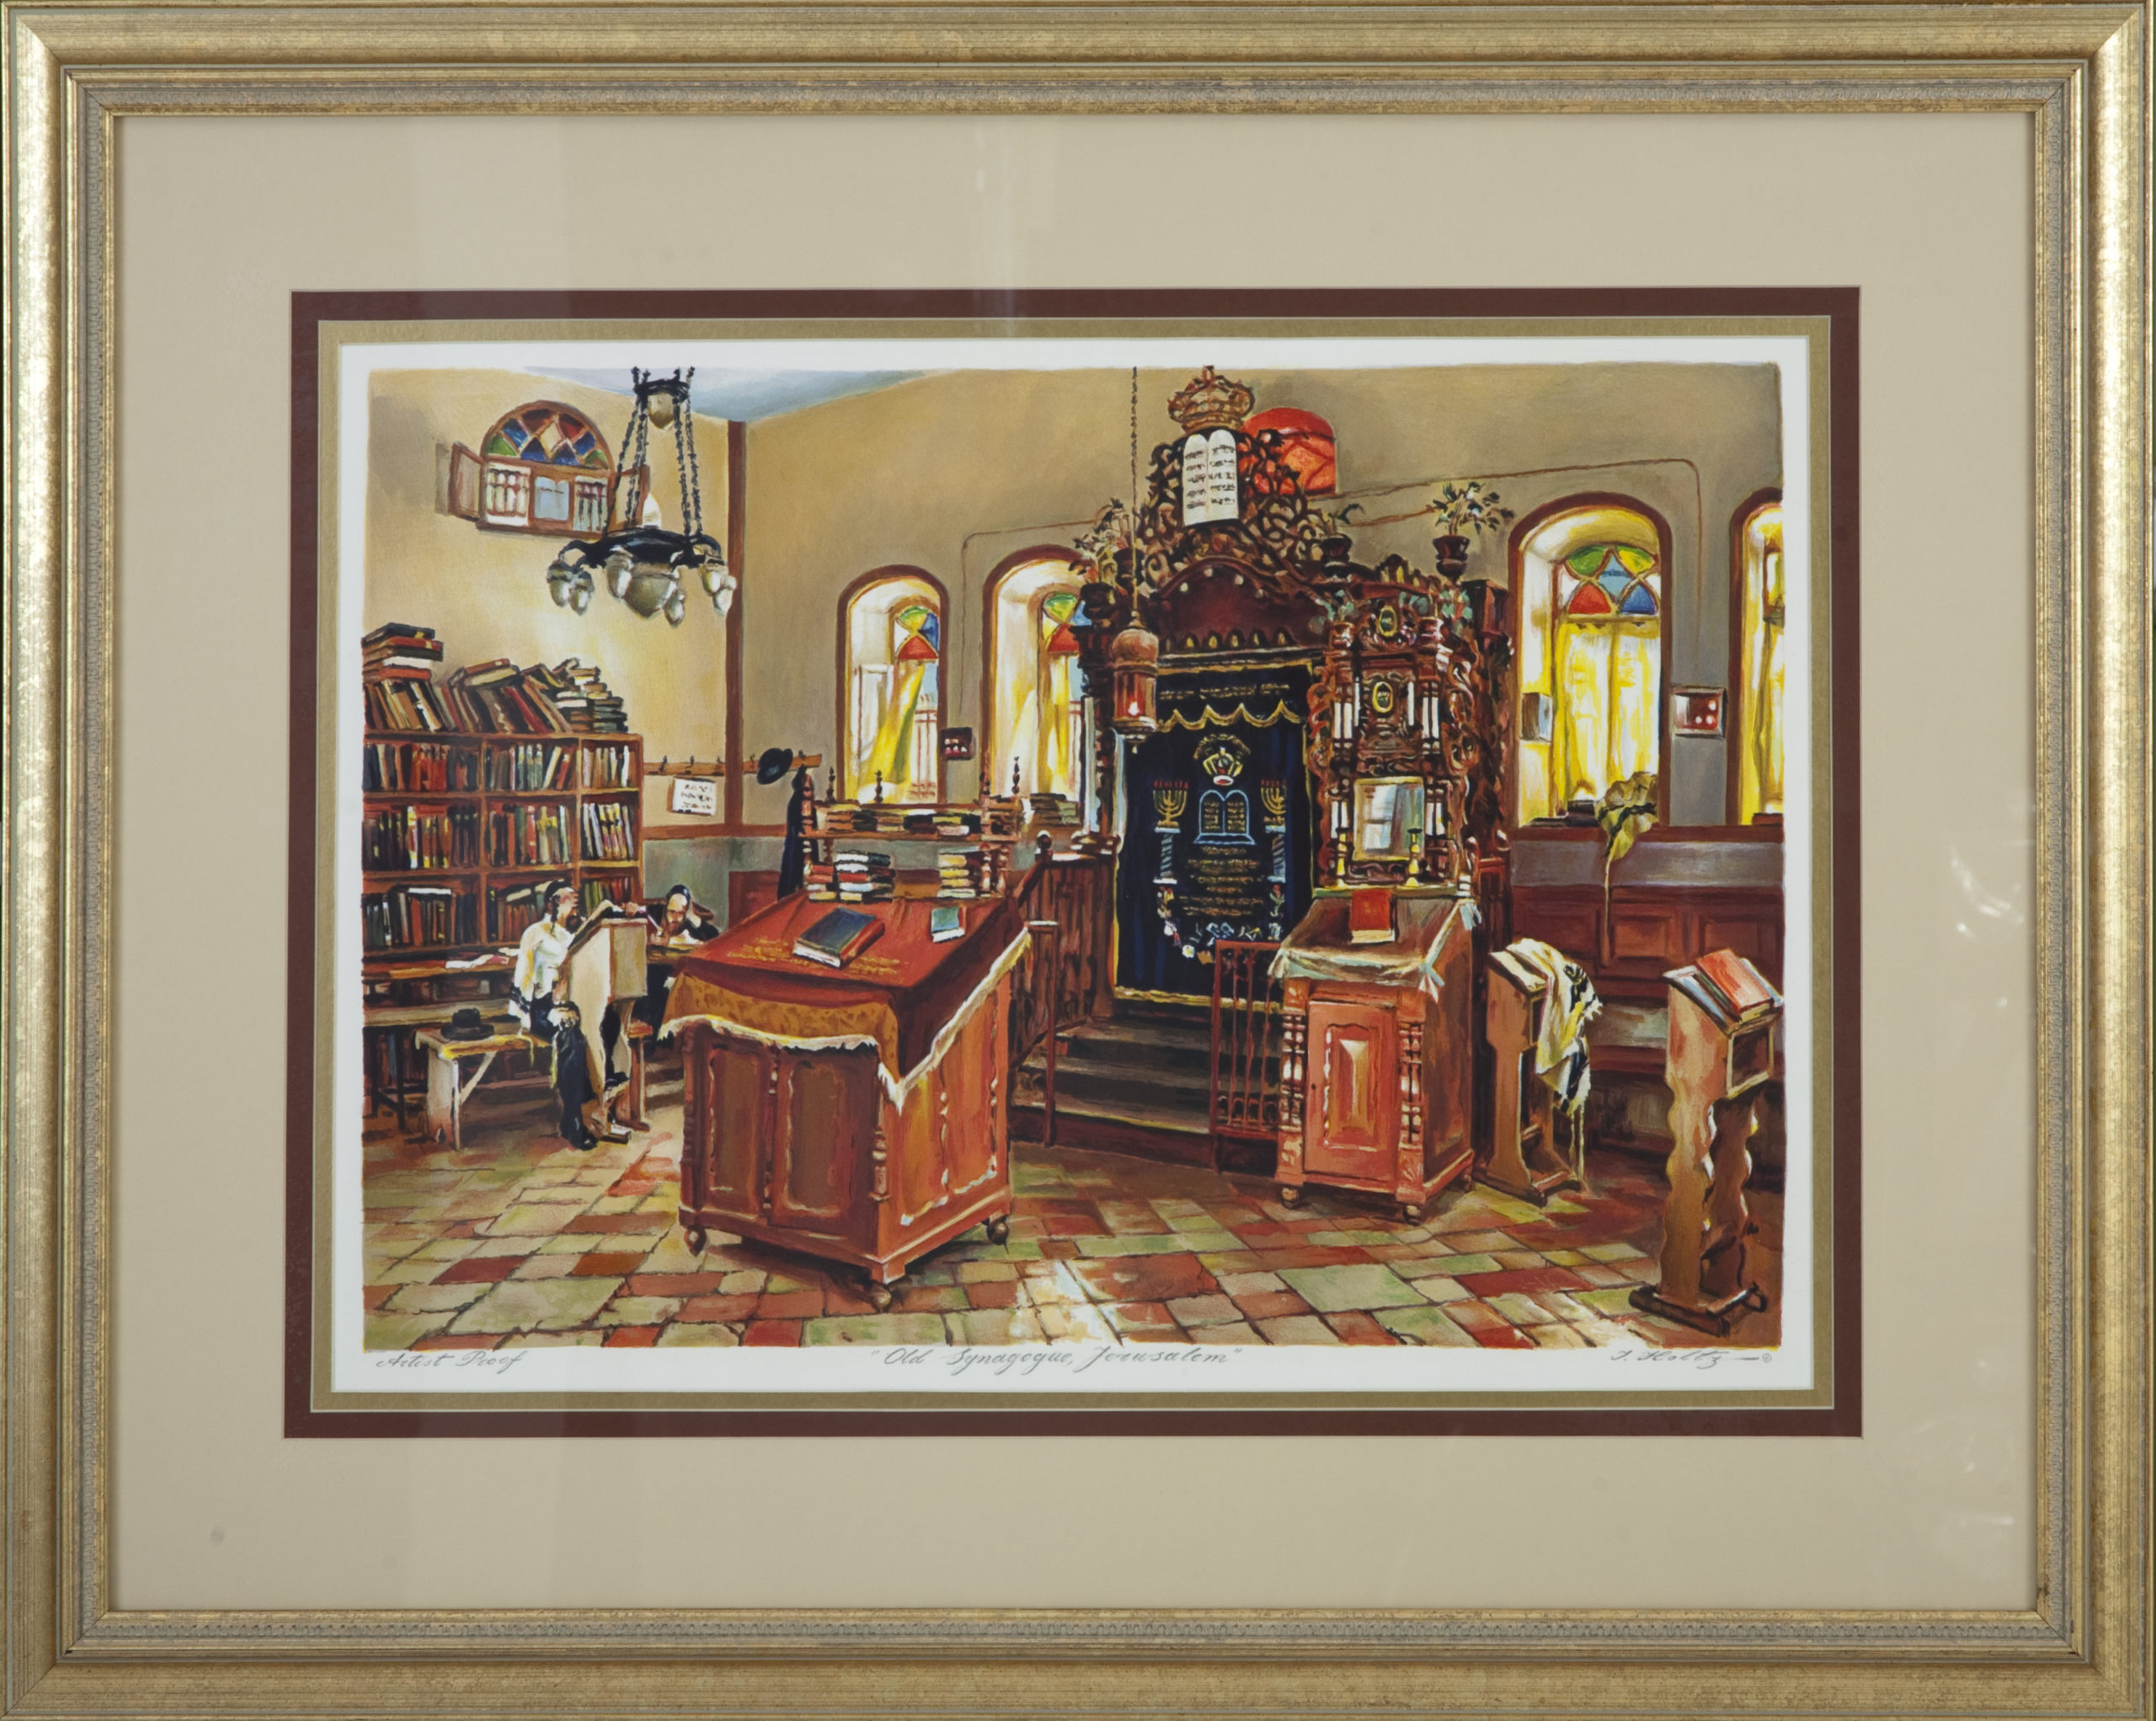 L52F Old Synagogue, Jerusalem - Color Lithograph - 31.5 x 23.25 - Framed